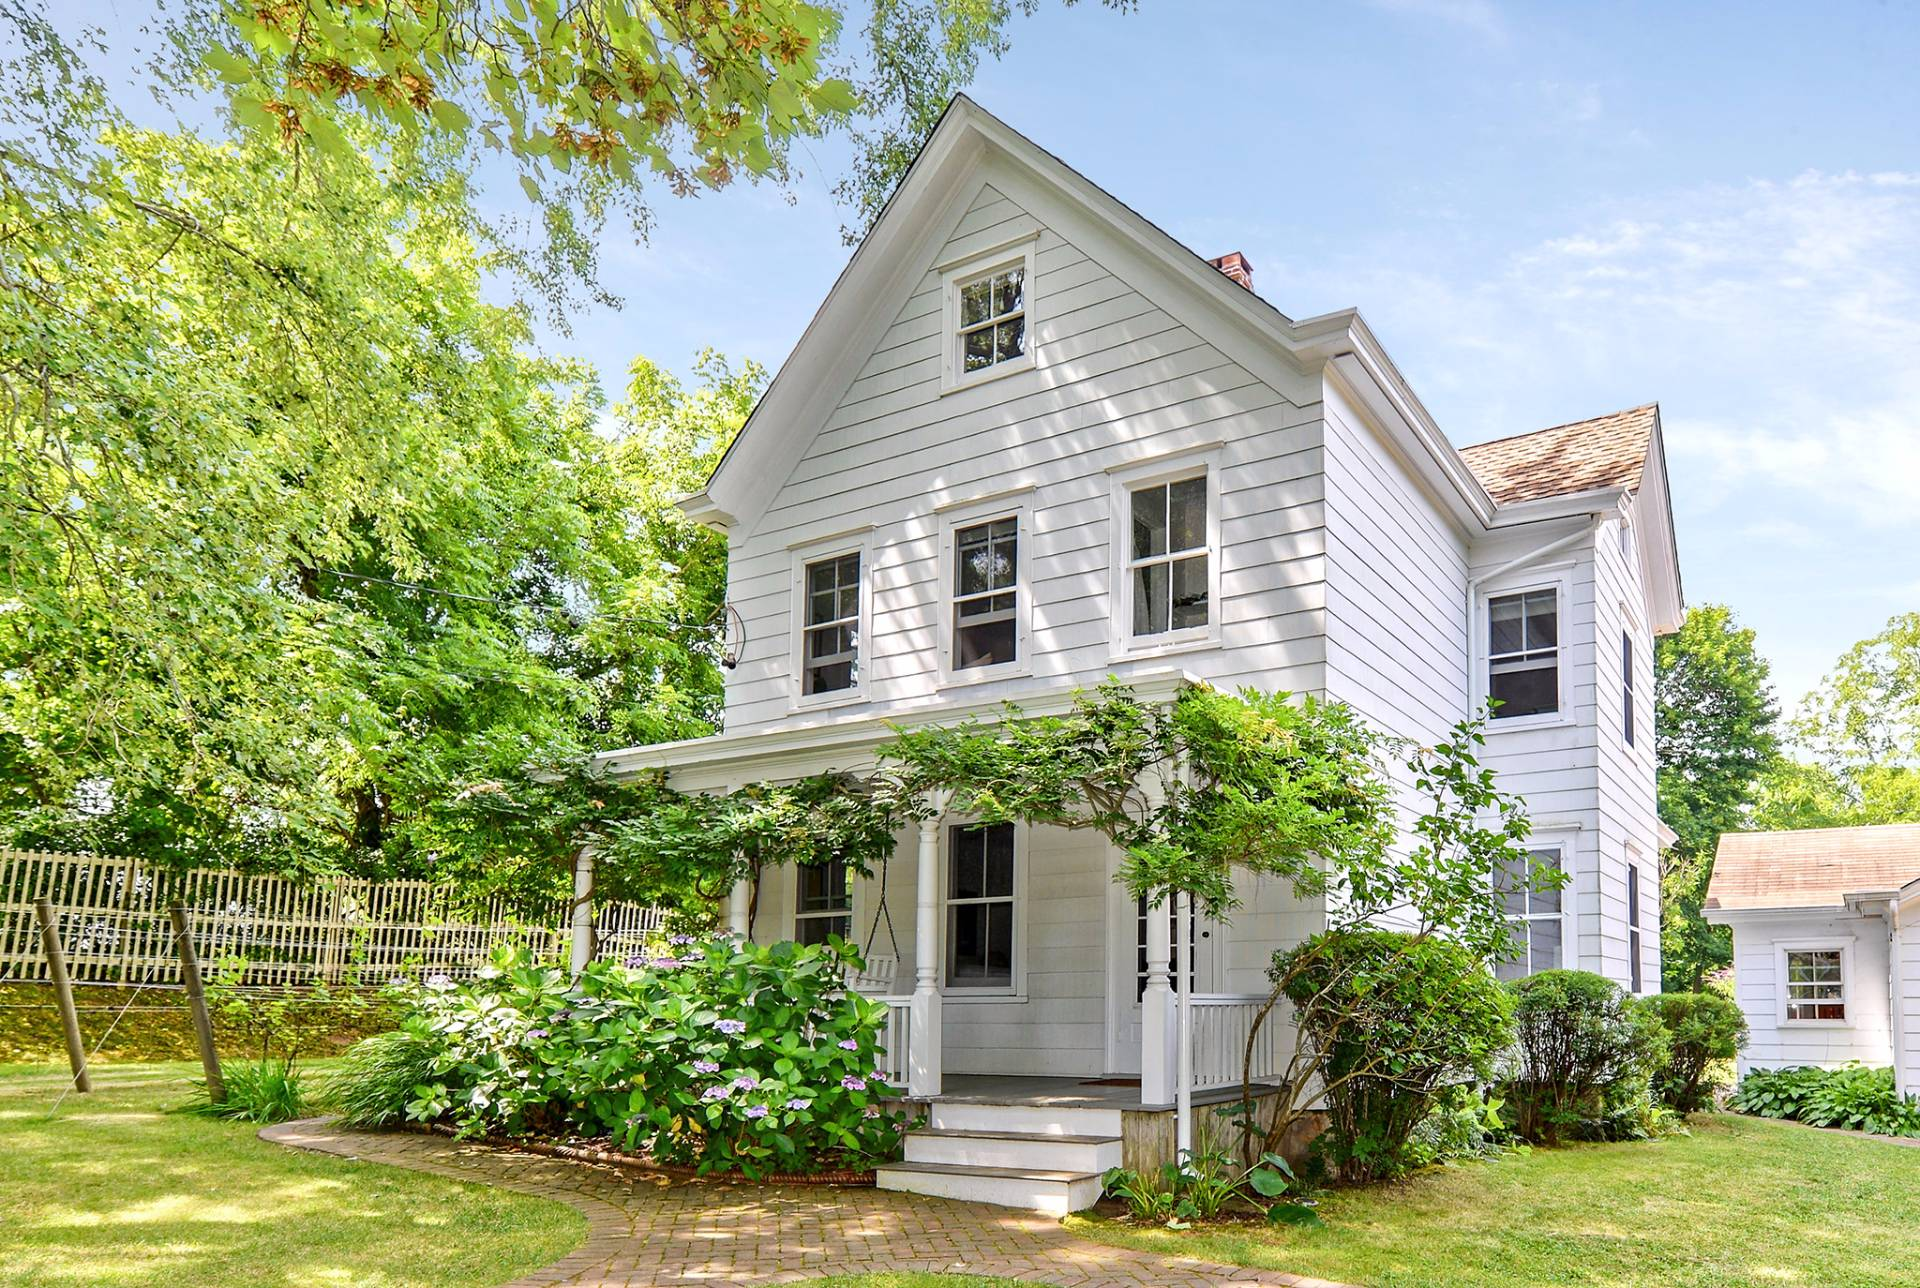 Single Family Home for Sale at Stylish Shelter Island Farmhouse With Pool And Pool House 63 North Menantic Road, Shelter Island, New York